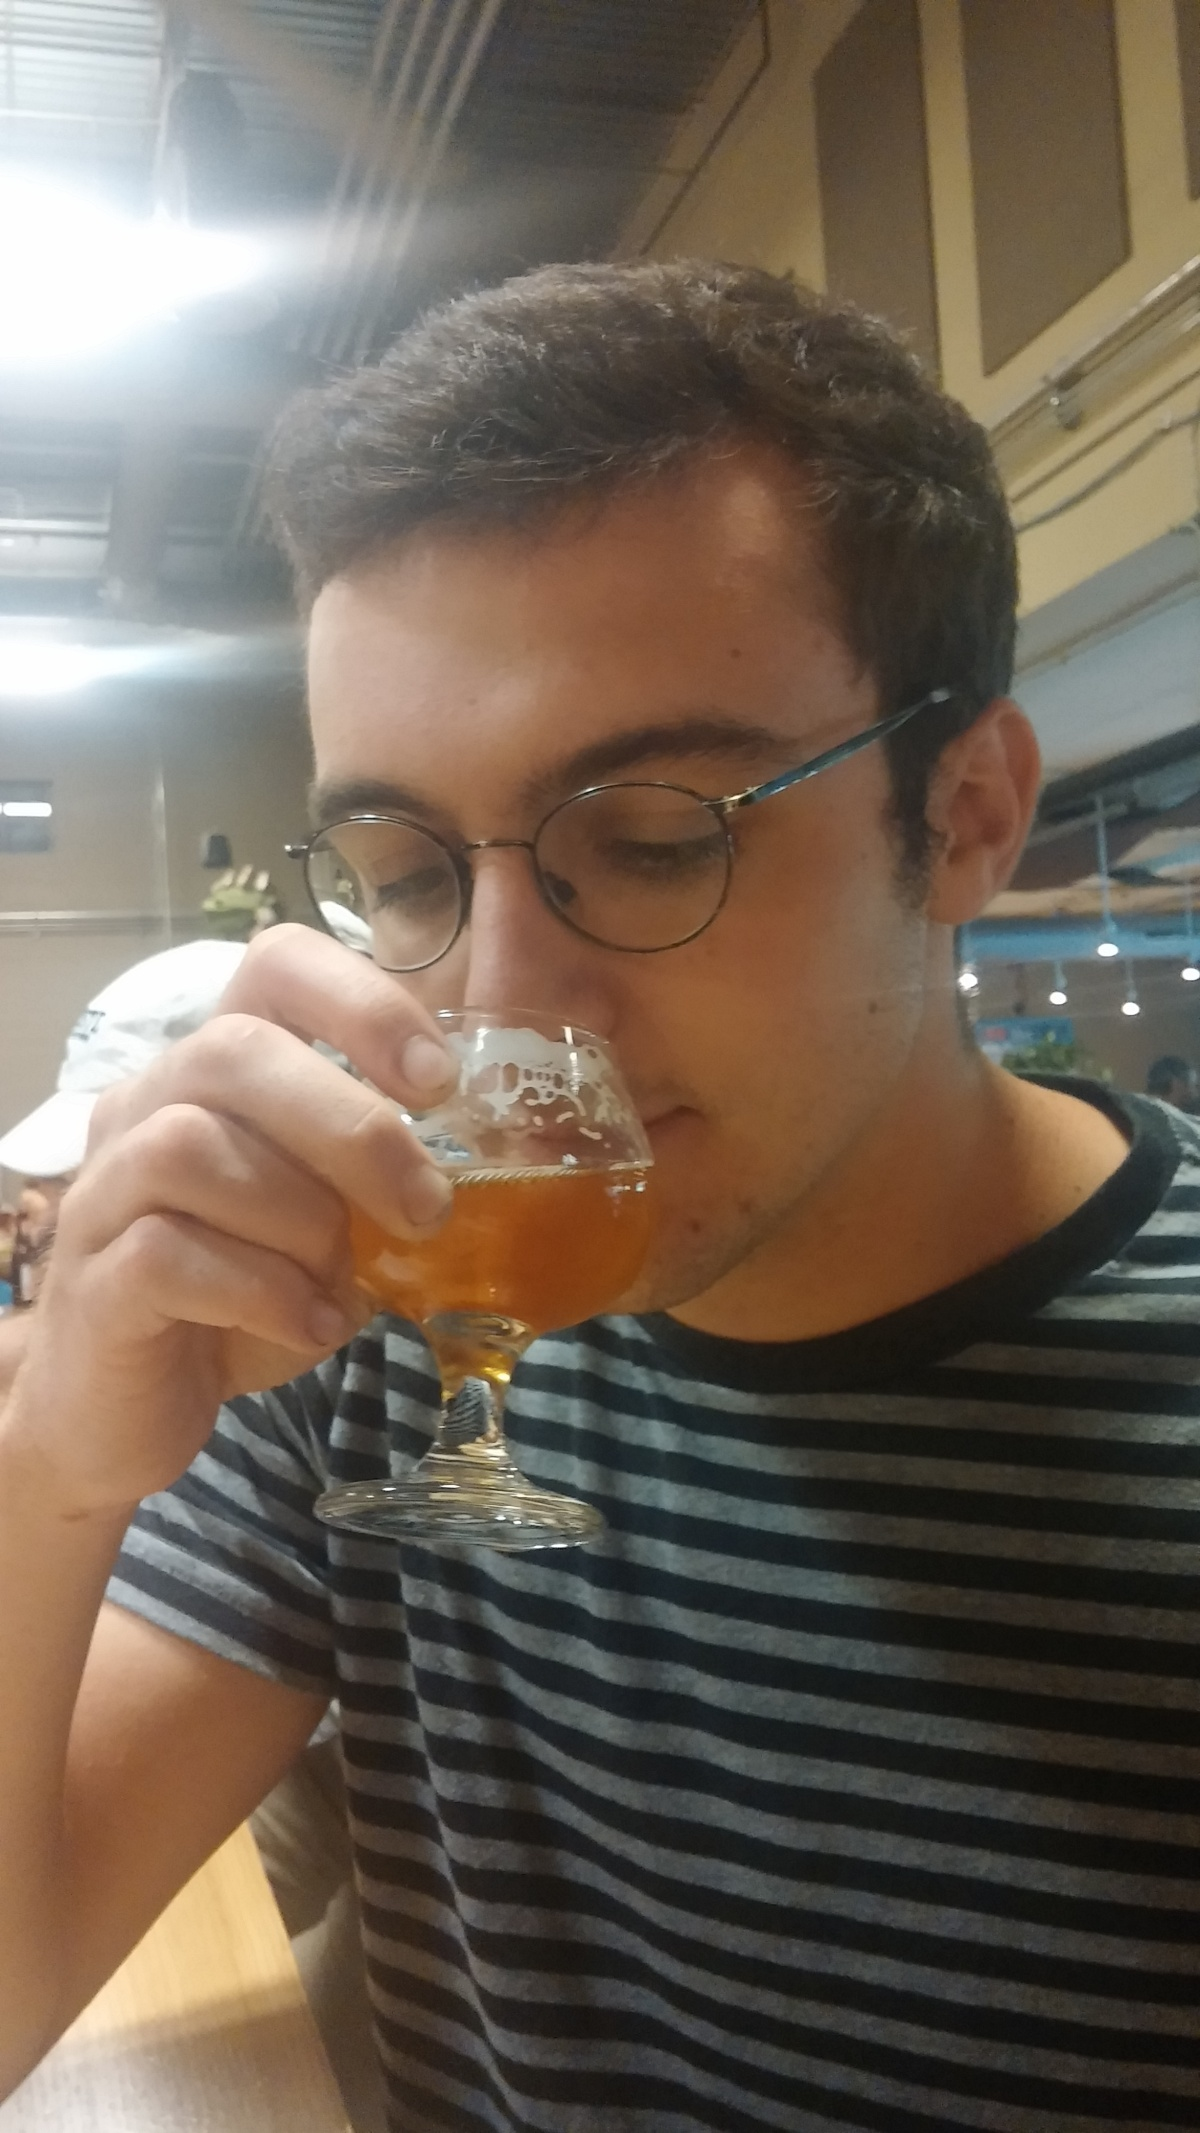 dan and beer